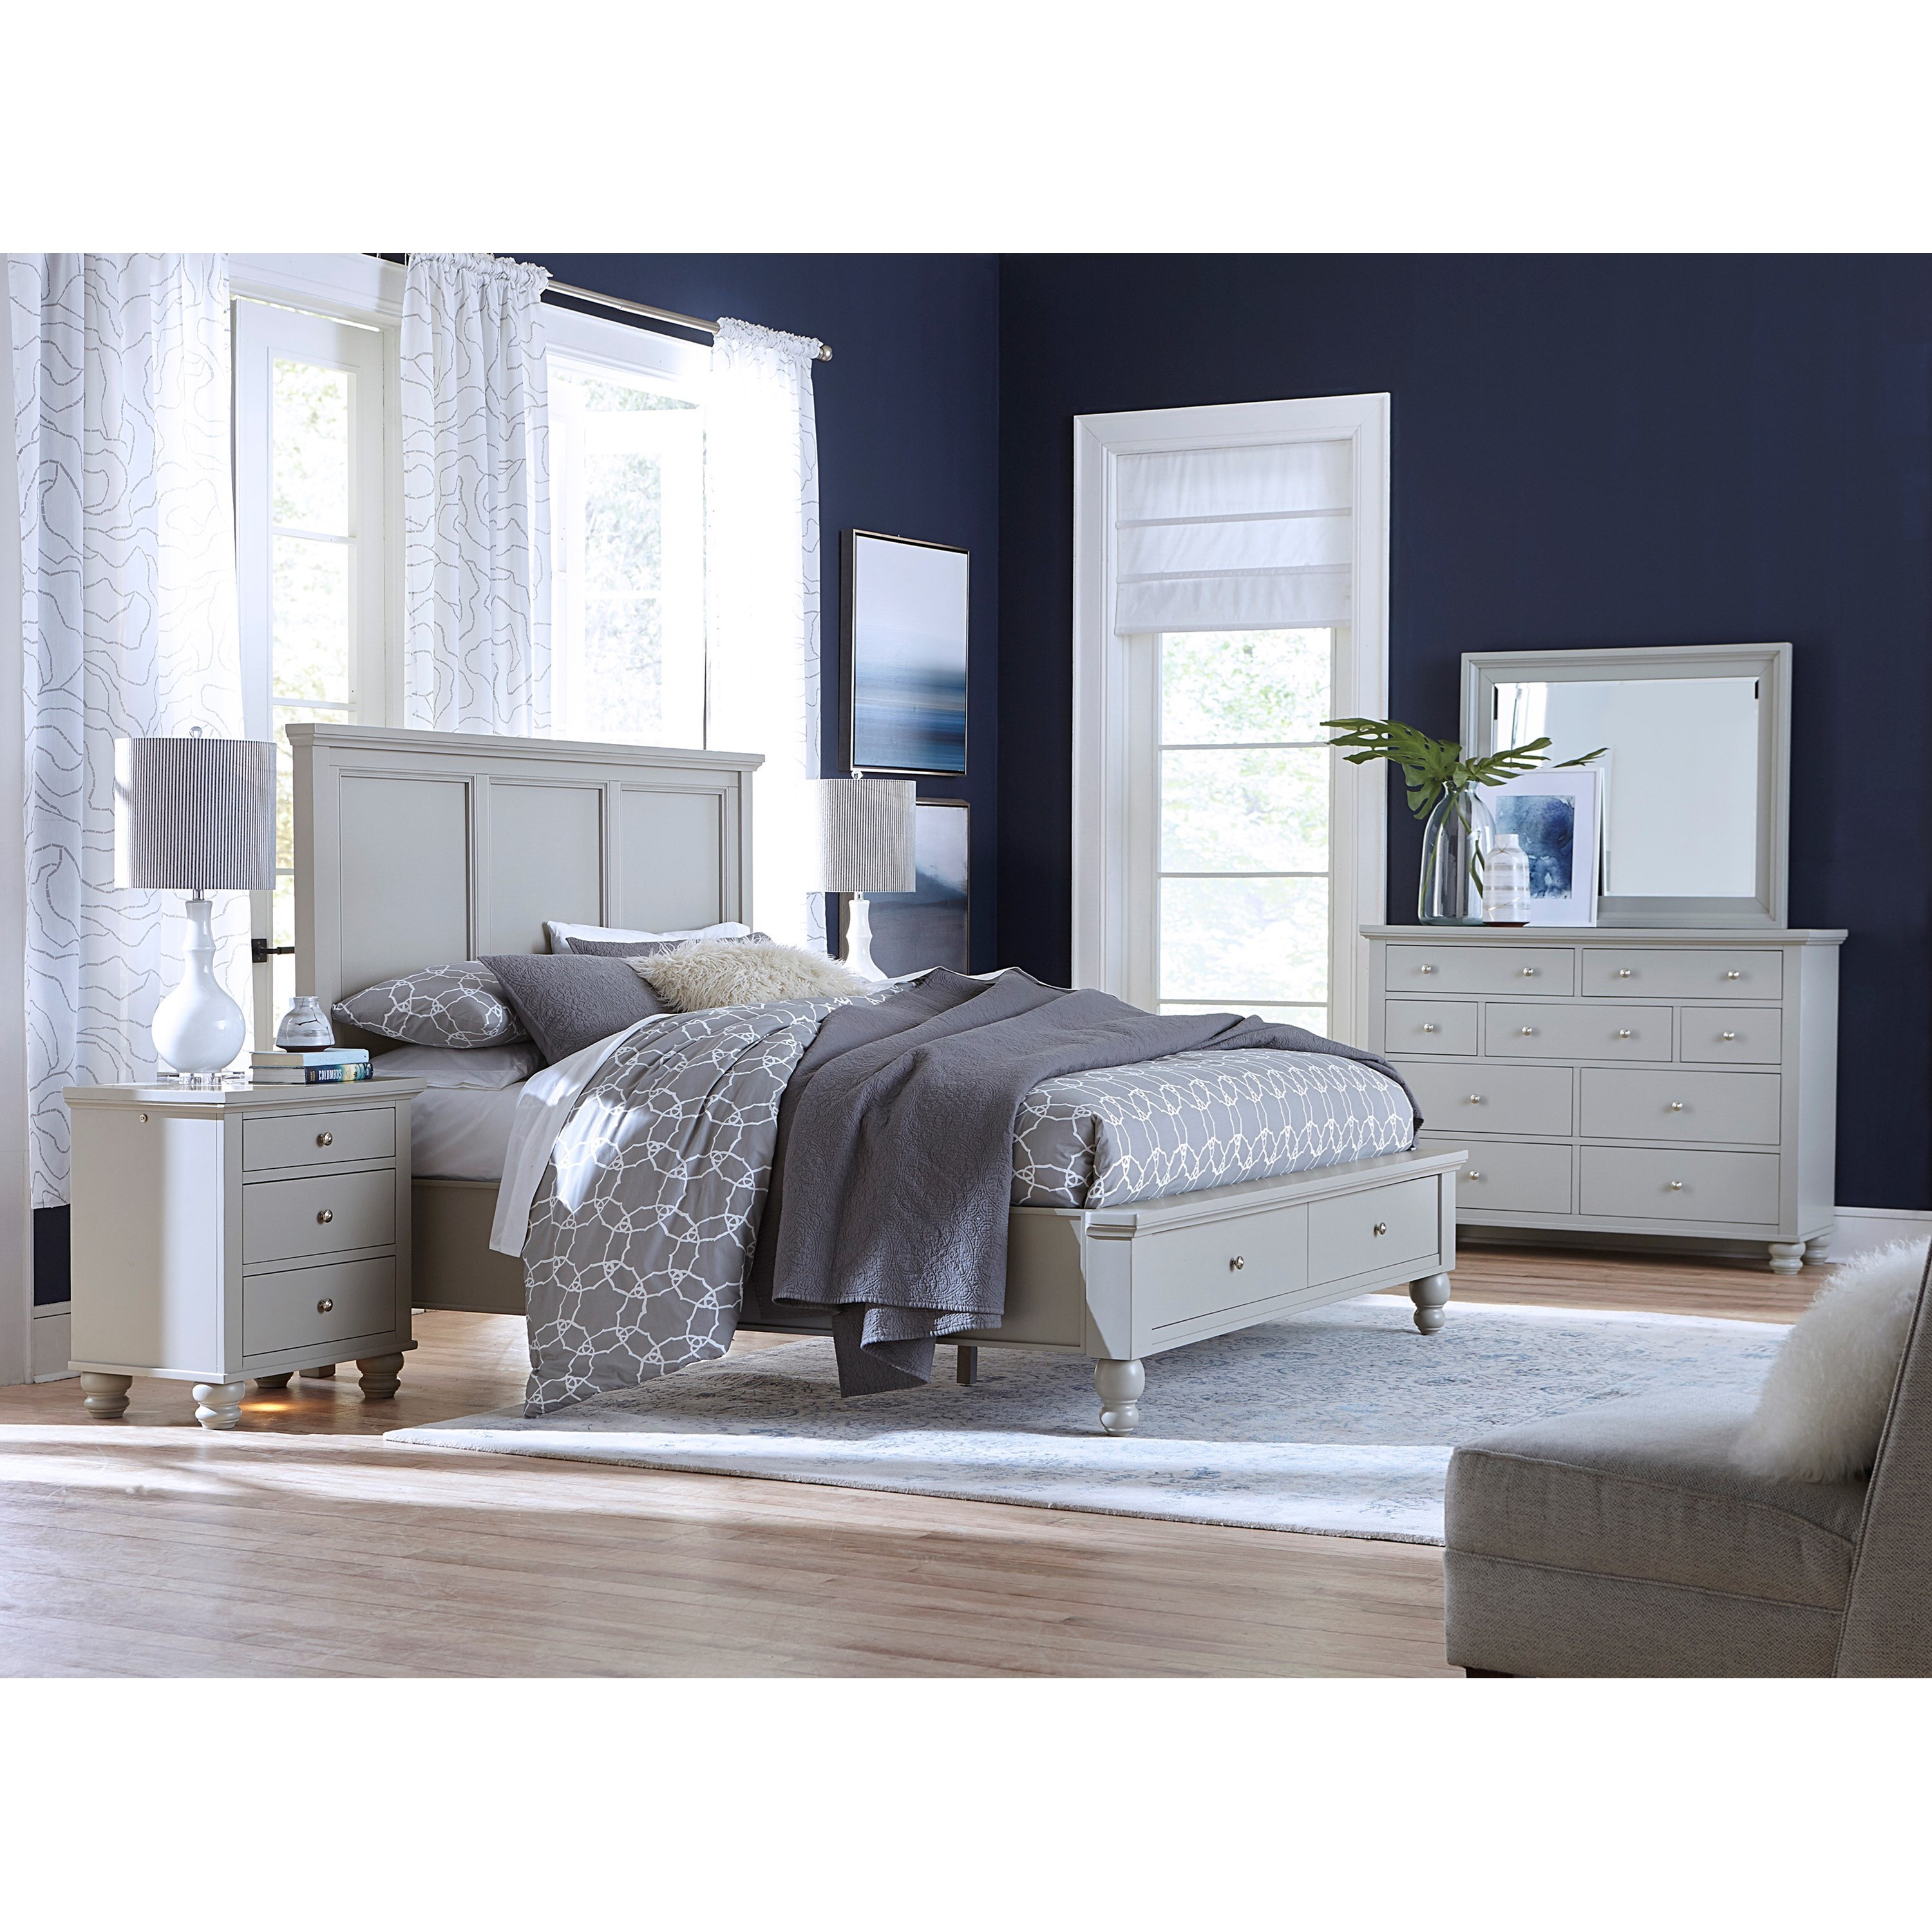 Cambridge King Bedroom Group by Aspenhome at Baer's Furniture